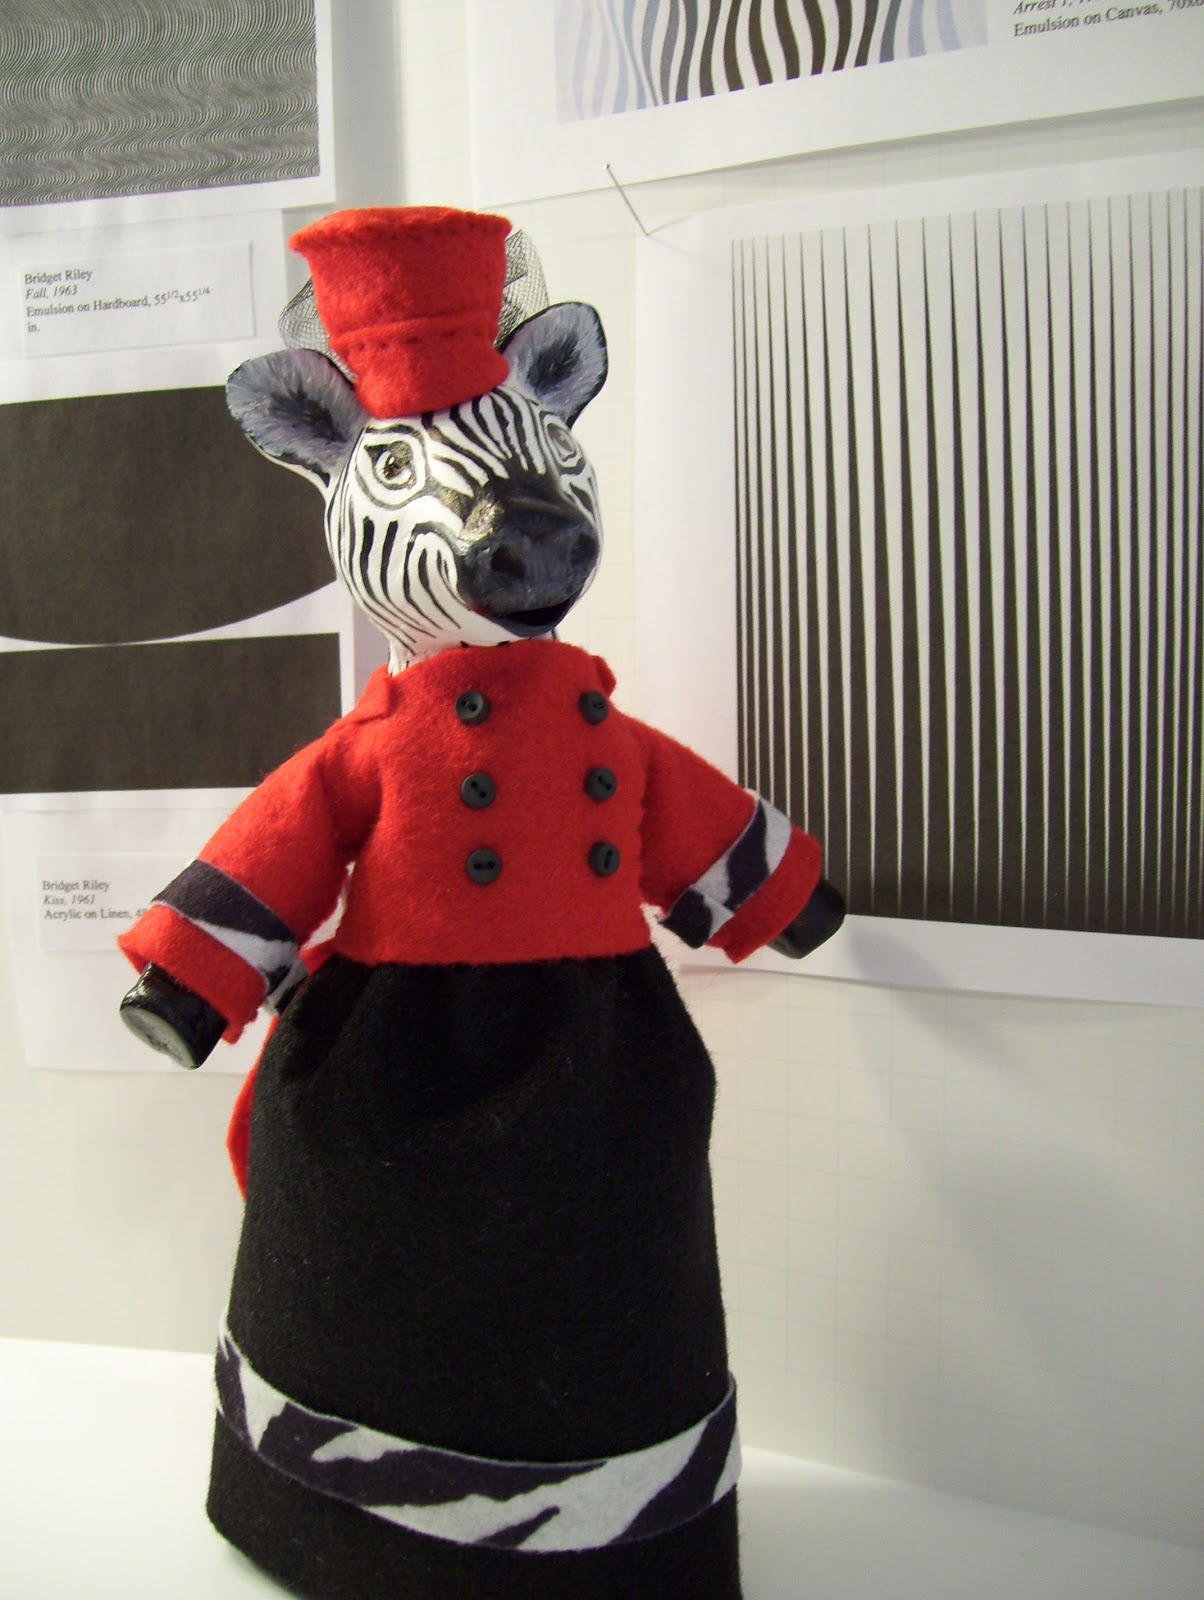 Studio 2137 zara the zebra and op art the lovely zara the zebra she is an admirer of the modern arts from the 1960s the op art or optical art really moves her and its all very groovy thecheapjerseys Gallery